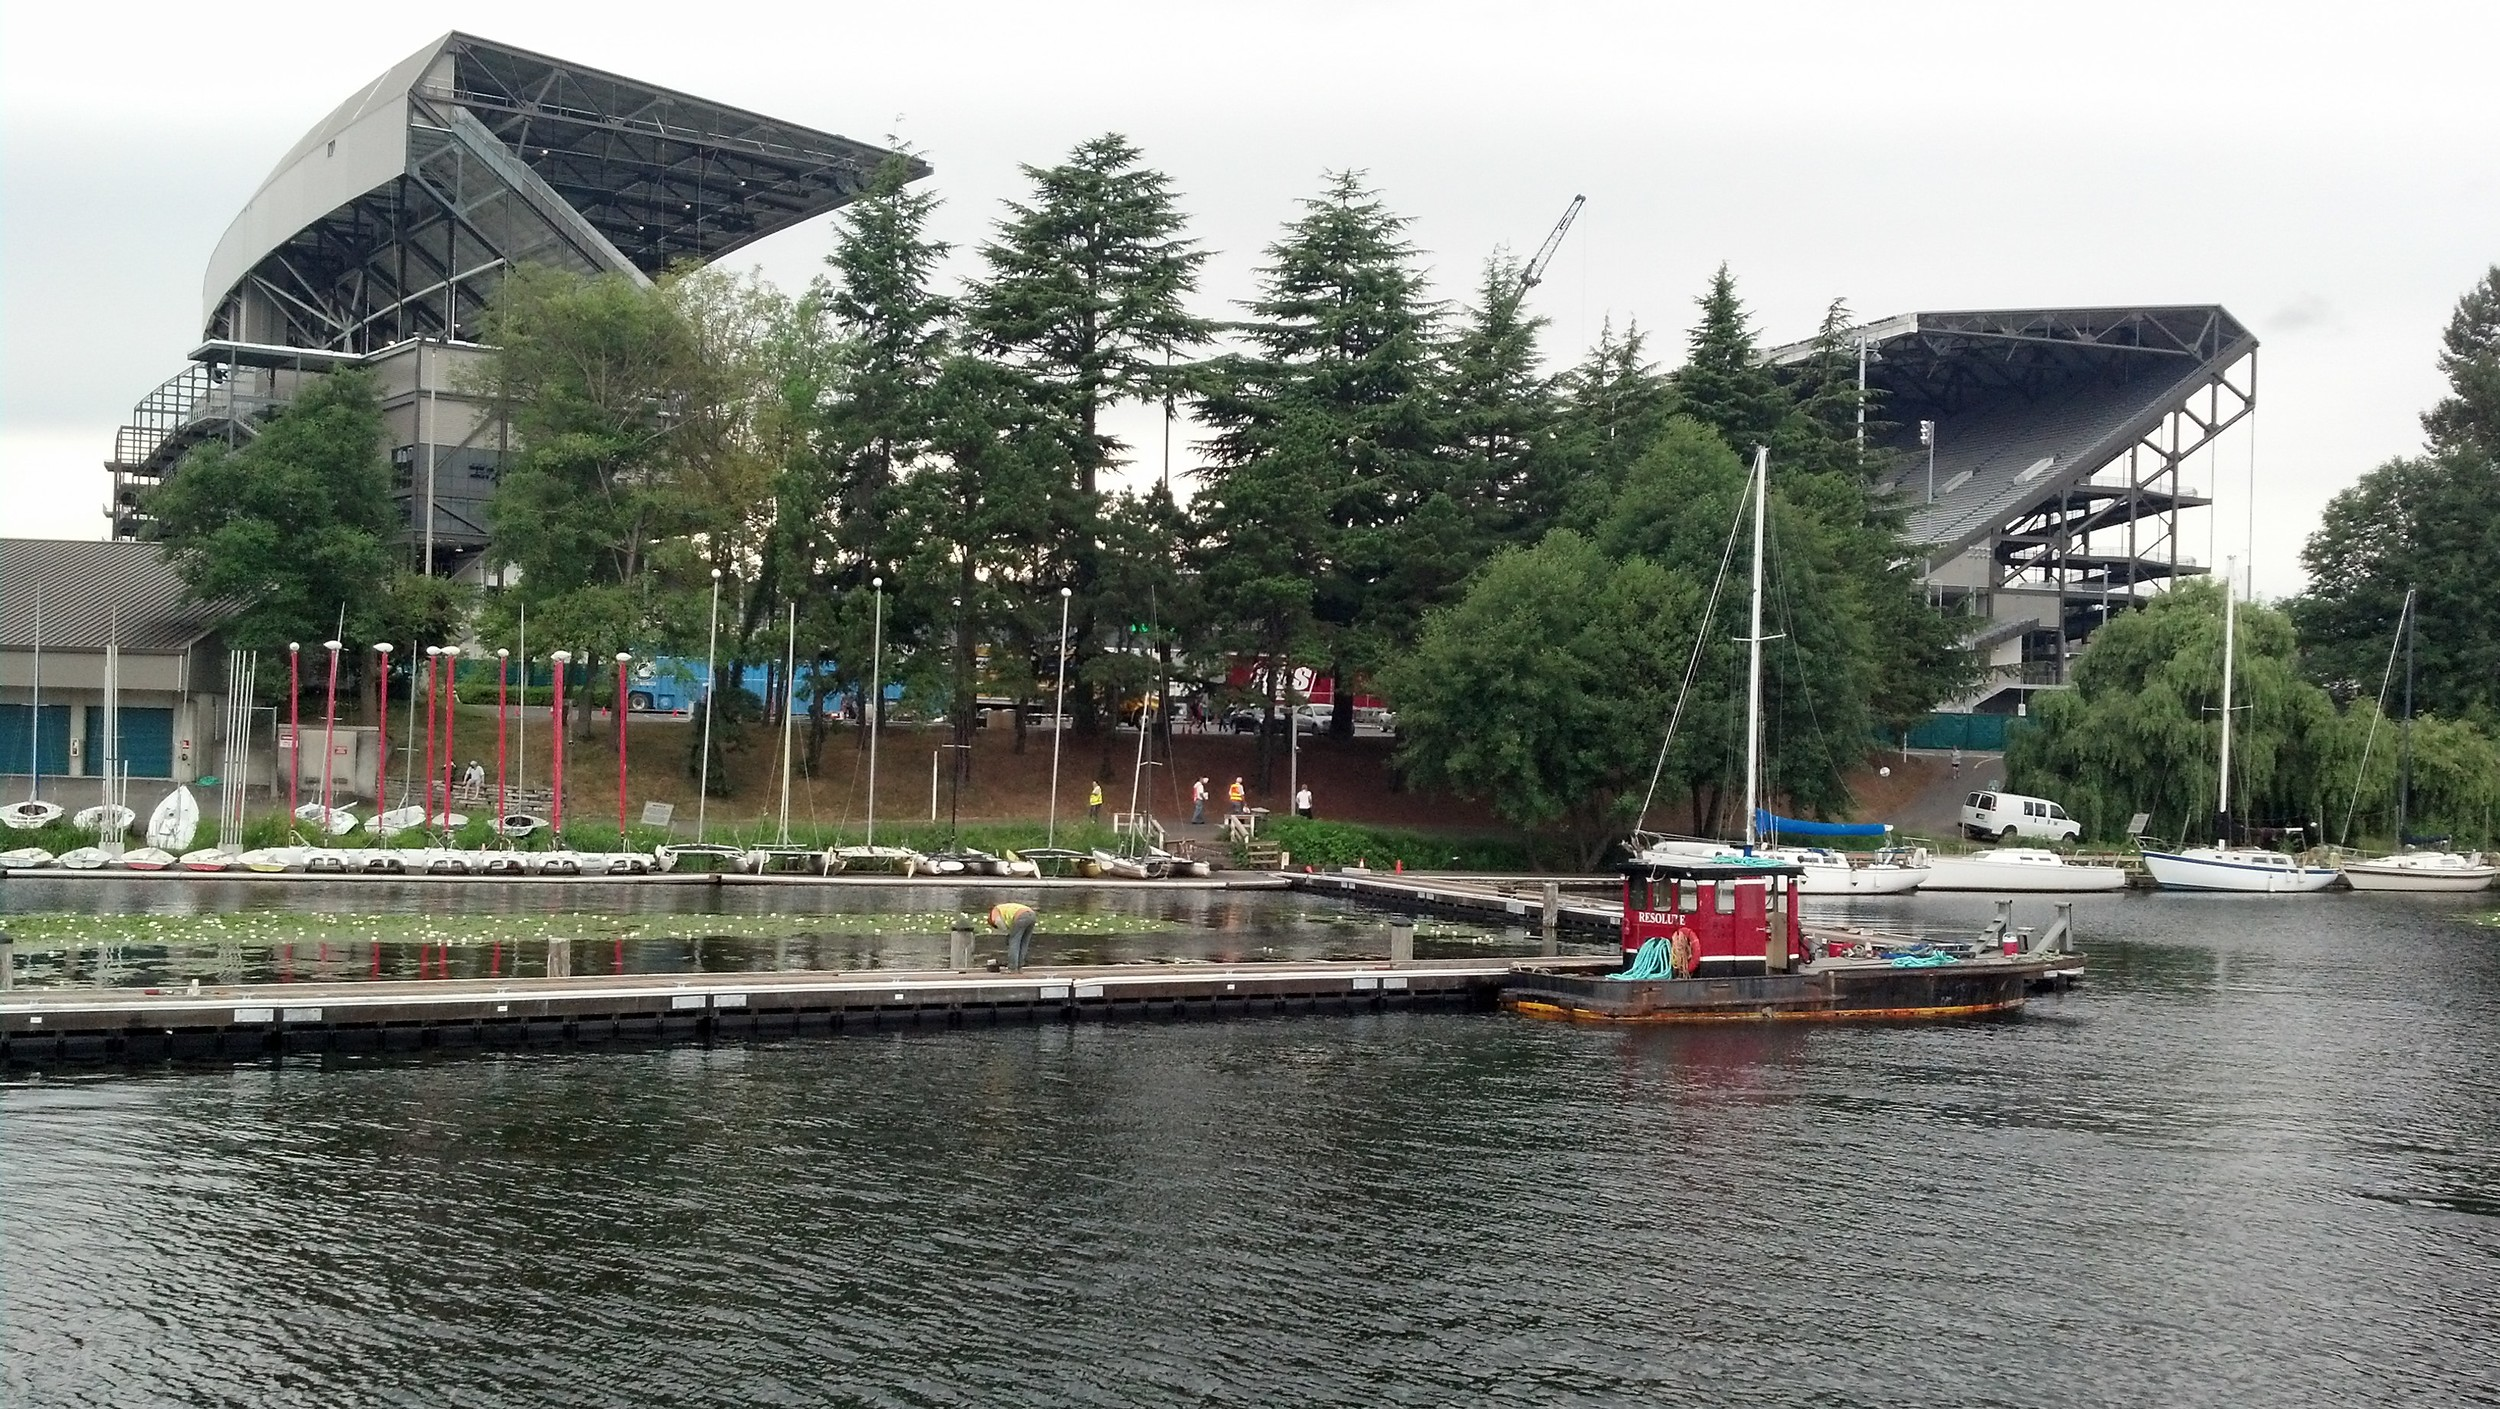 University of Washington Husky Stadium Visitor Dock Seattle, WA Designed by Reid Middleton Engineers of Everett Washington. Construction by Redside Construction Port Gamble, WA. Click on the above picture to see more.